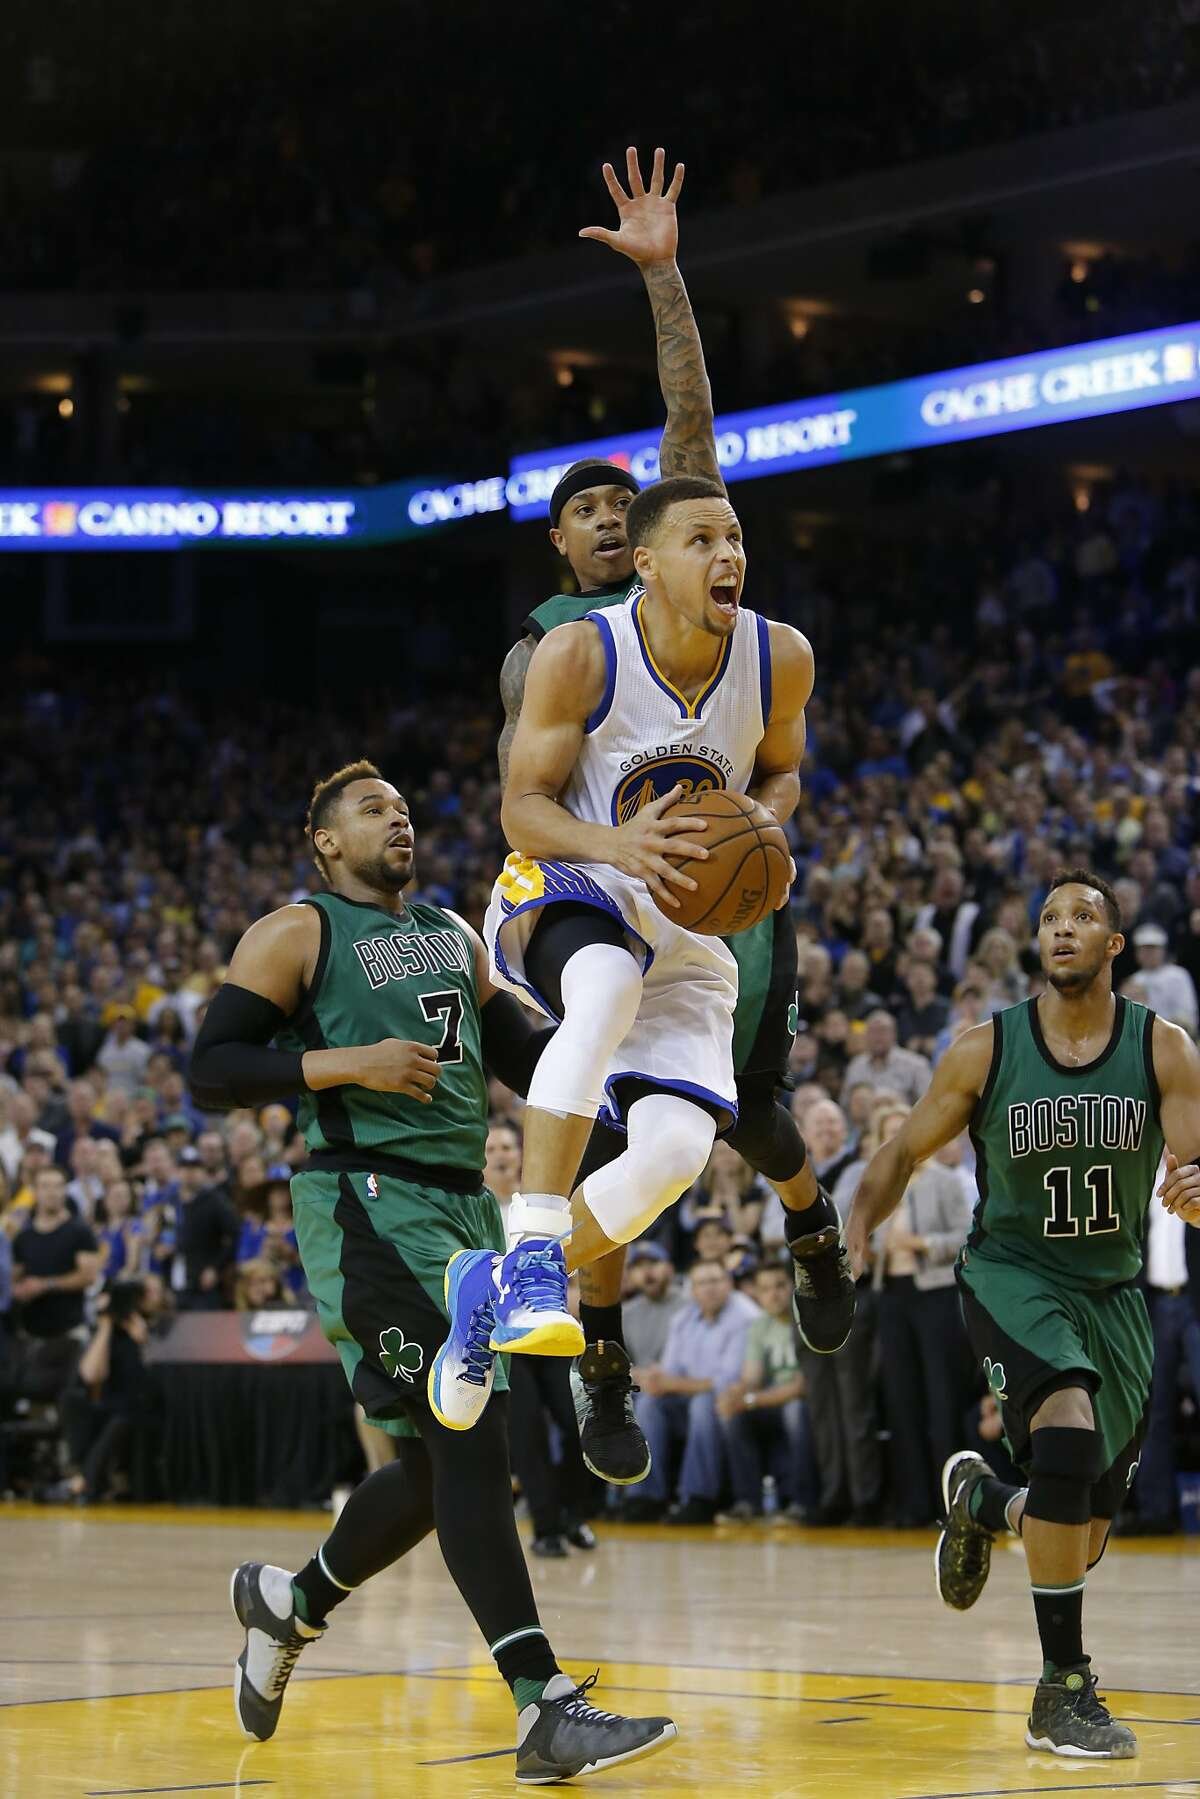 Warriors' Stephen Curry, 30 drives past the Celtics' Isaish Thomas, 4 in the second half, as the Golden State Warriors went on to lose to the Boston Celtics 106-109 in NBA action at Oracle Arena, in Oakland, California, on Fri. April 1, 2016